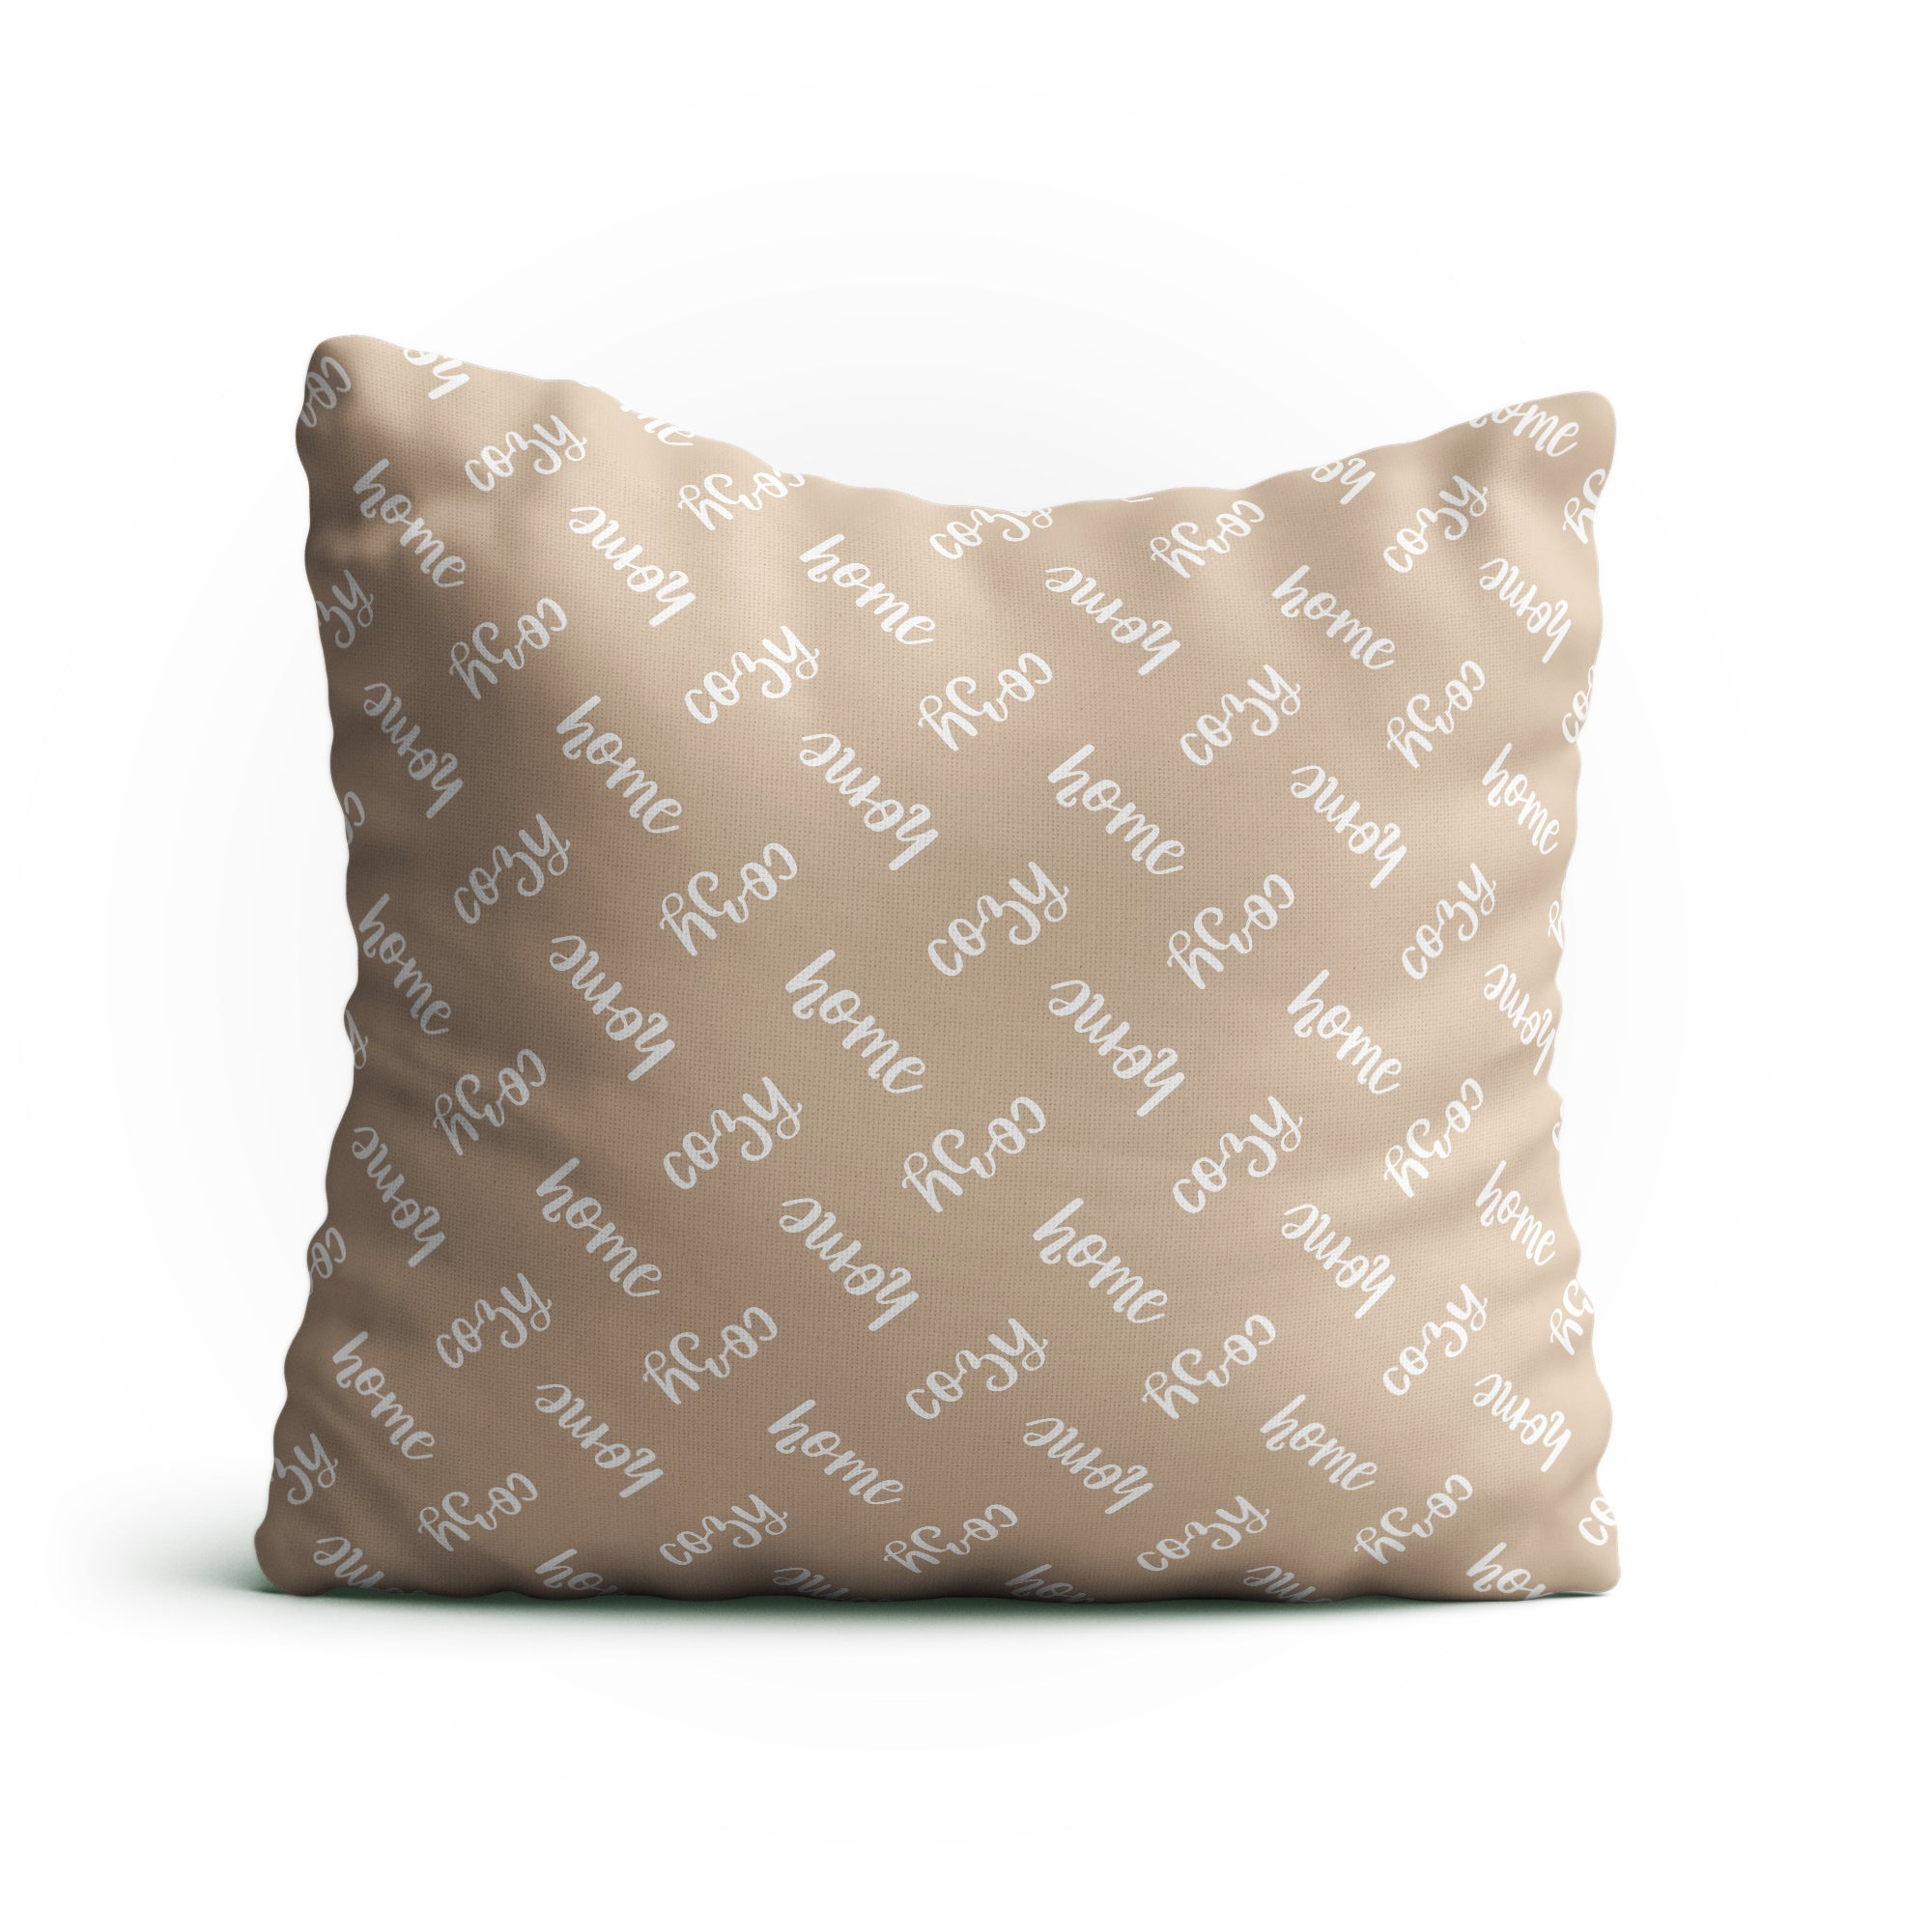 Throw Pillow - 'Cozy Home' Text Pattern Double-Sided 18x18 Square Pillow Cover with Insert for Couch, Sofa or Bed  ( Beige )